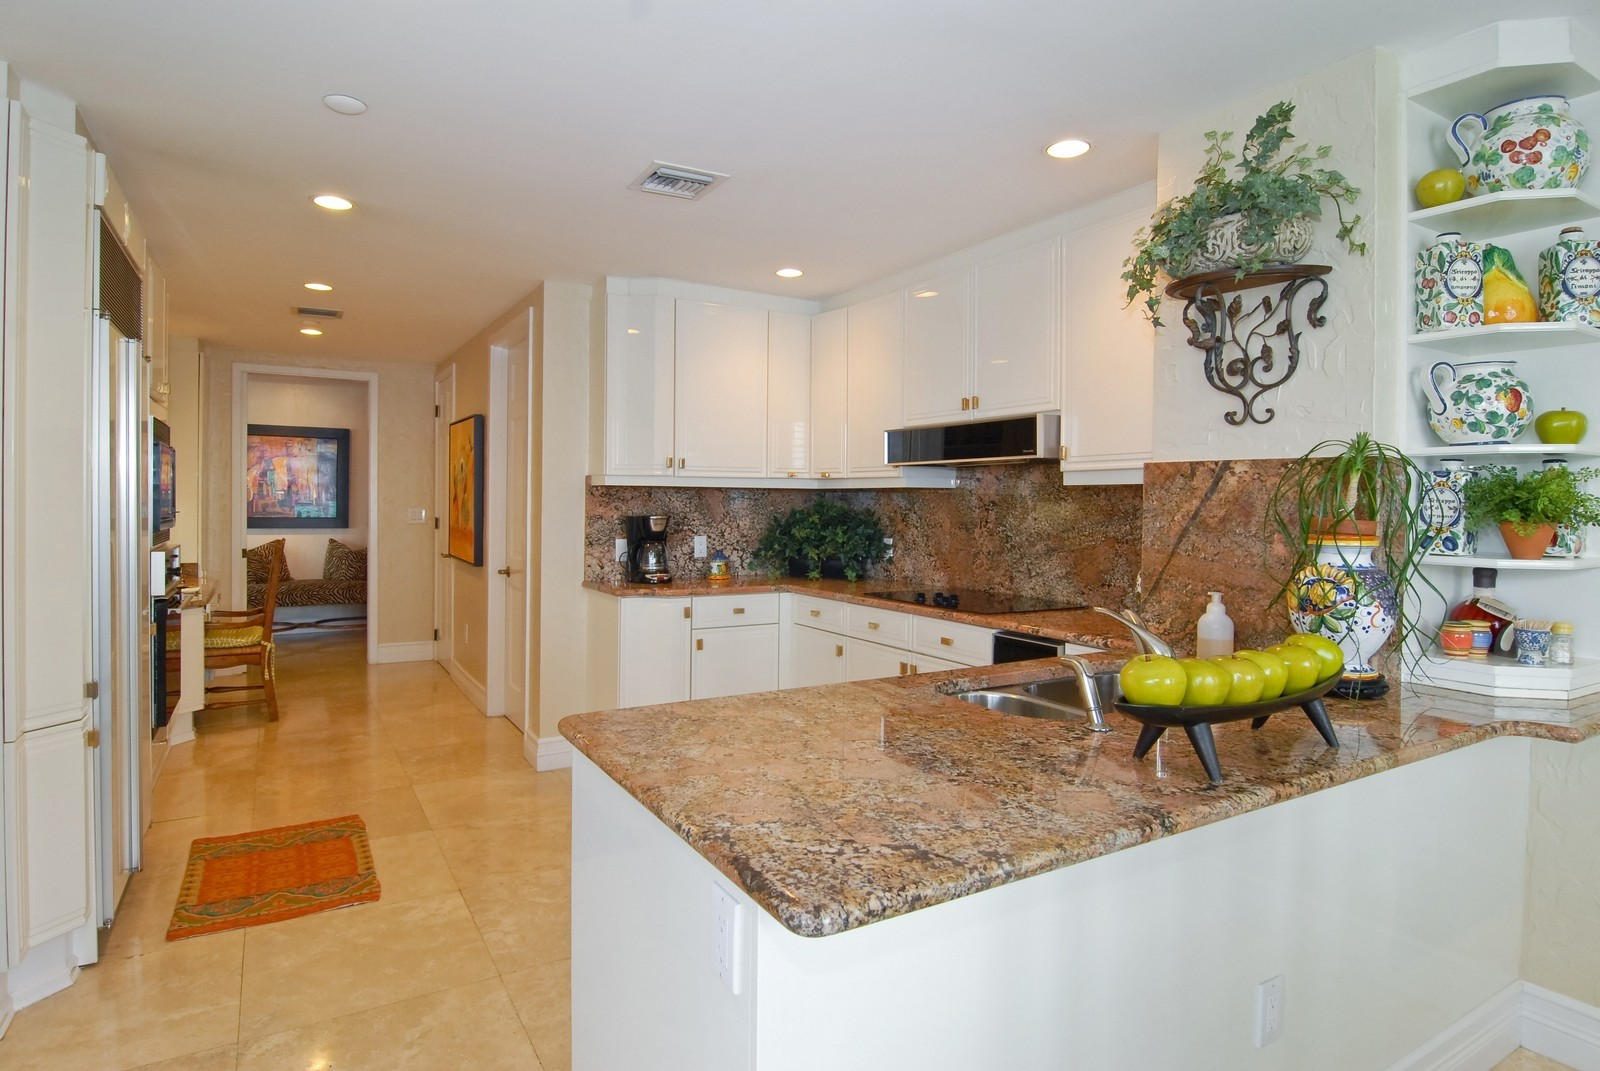 Real Estate Photography - 7251 Fisher Island Dr, Fisher Island, FL, 33109 - Kitchen